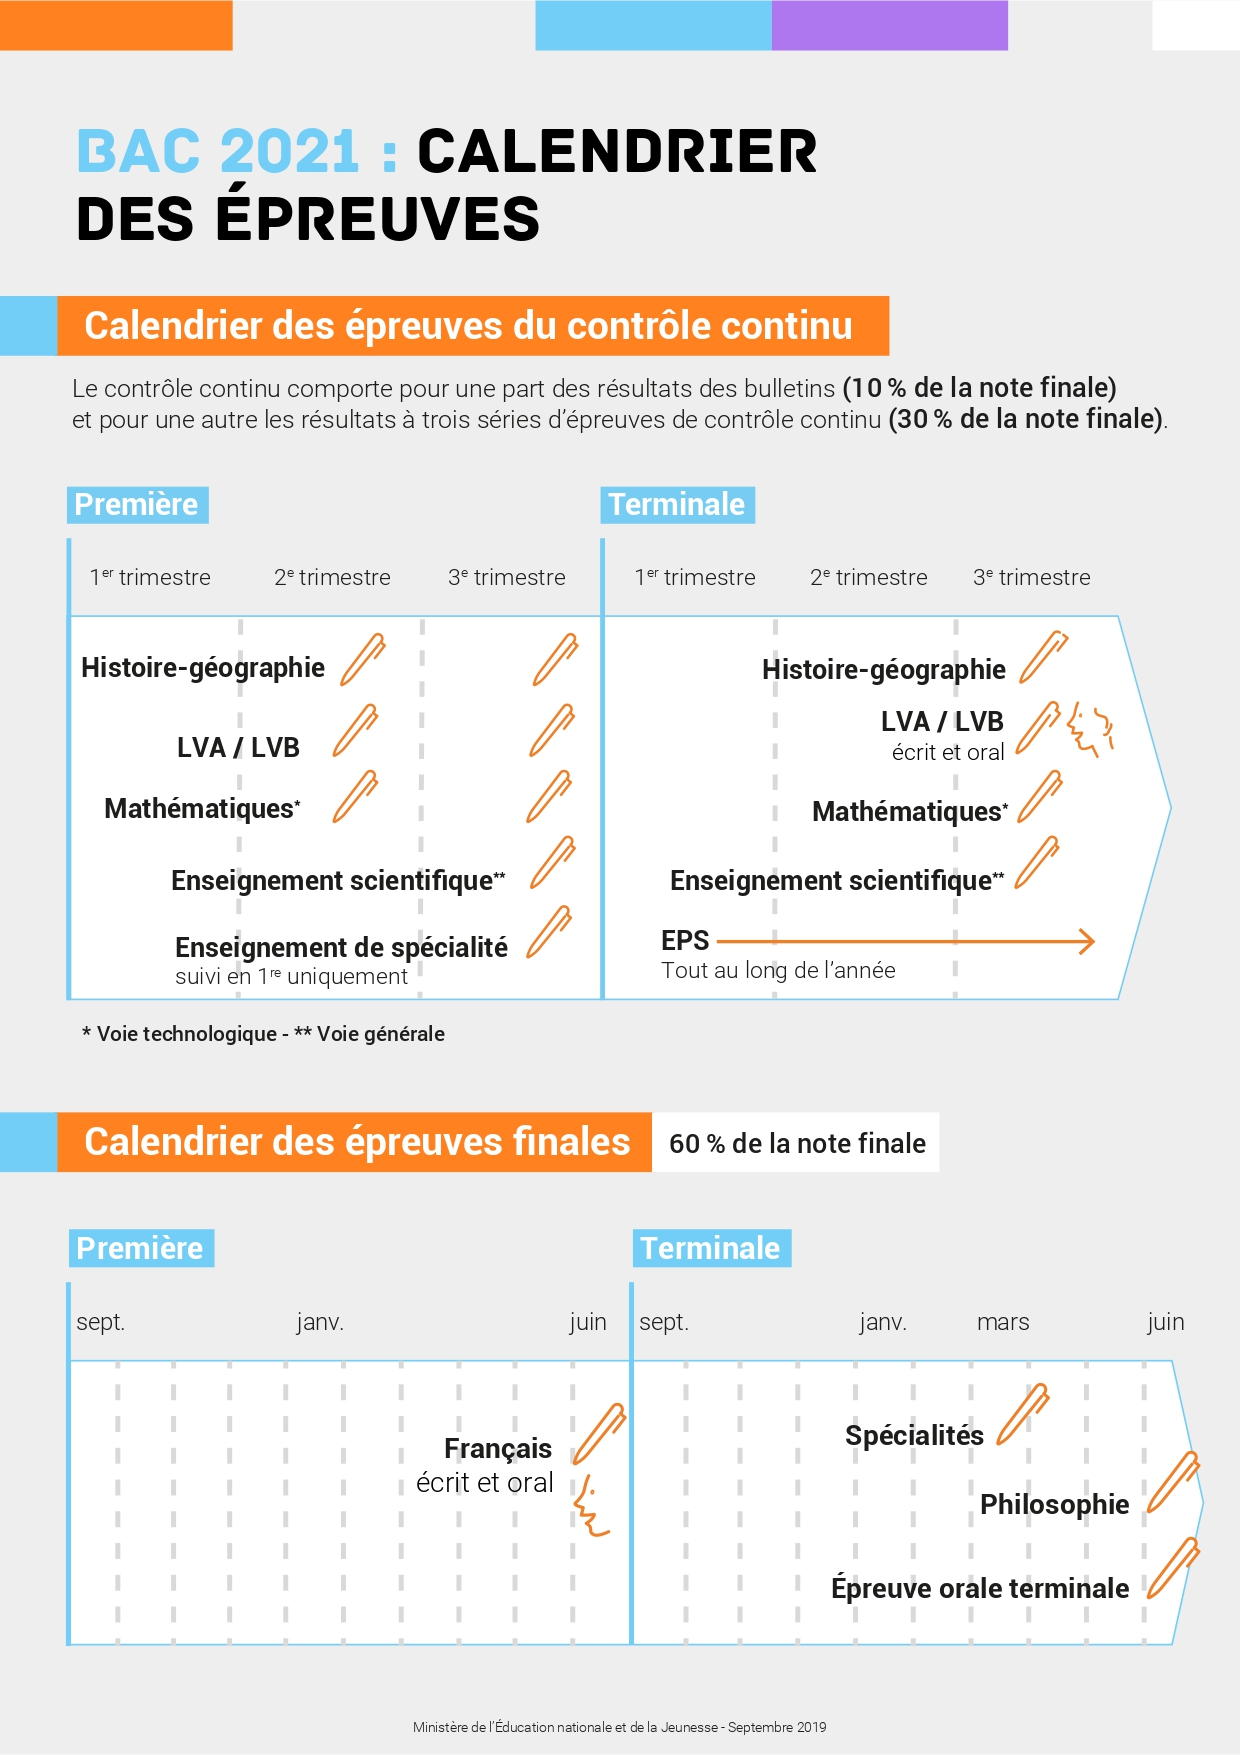 Epreuves calendrier duree BAC 2021 1 page 0001